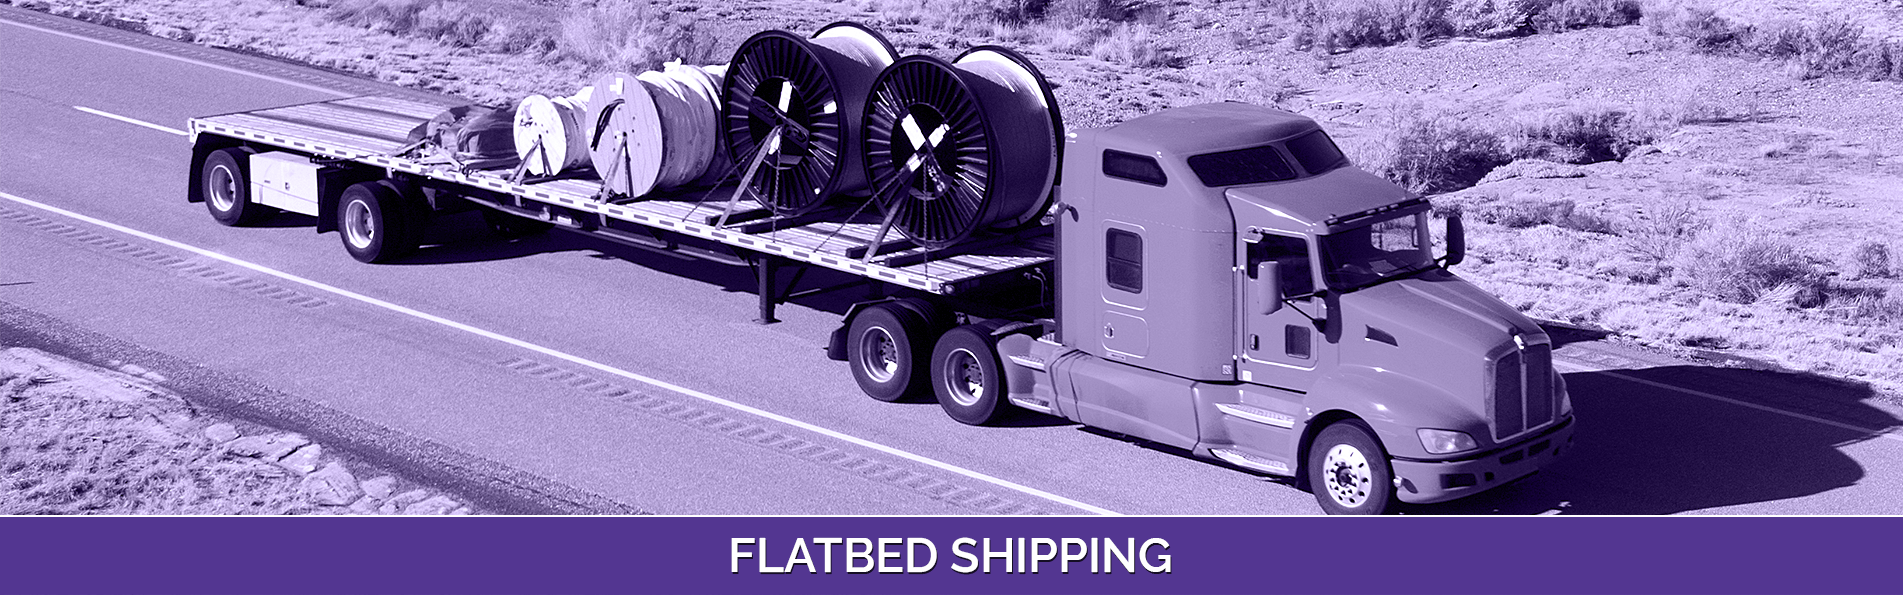 Flatbed Shipping